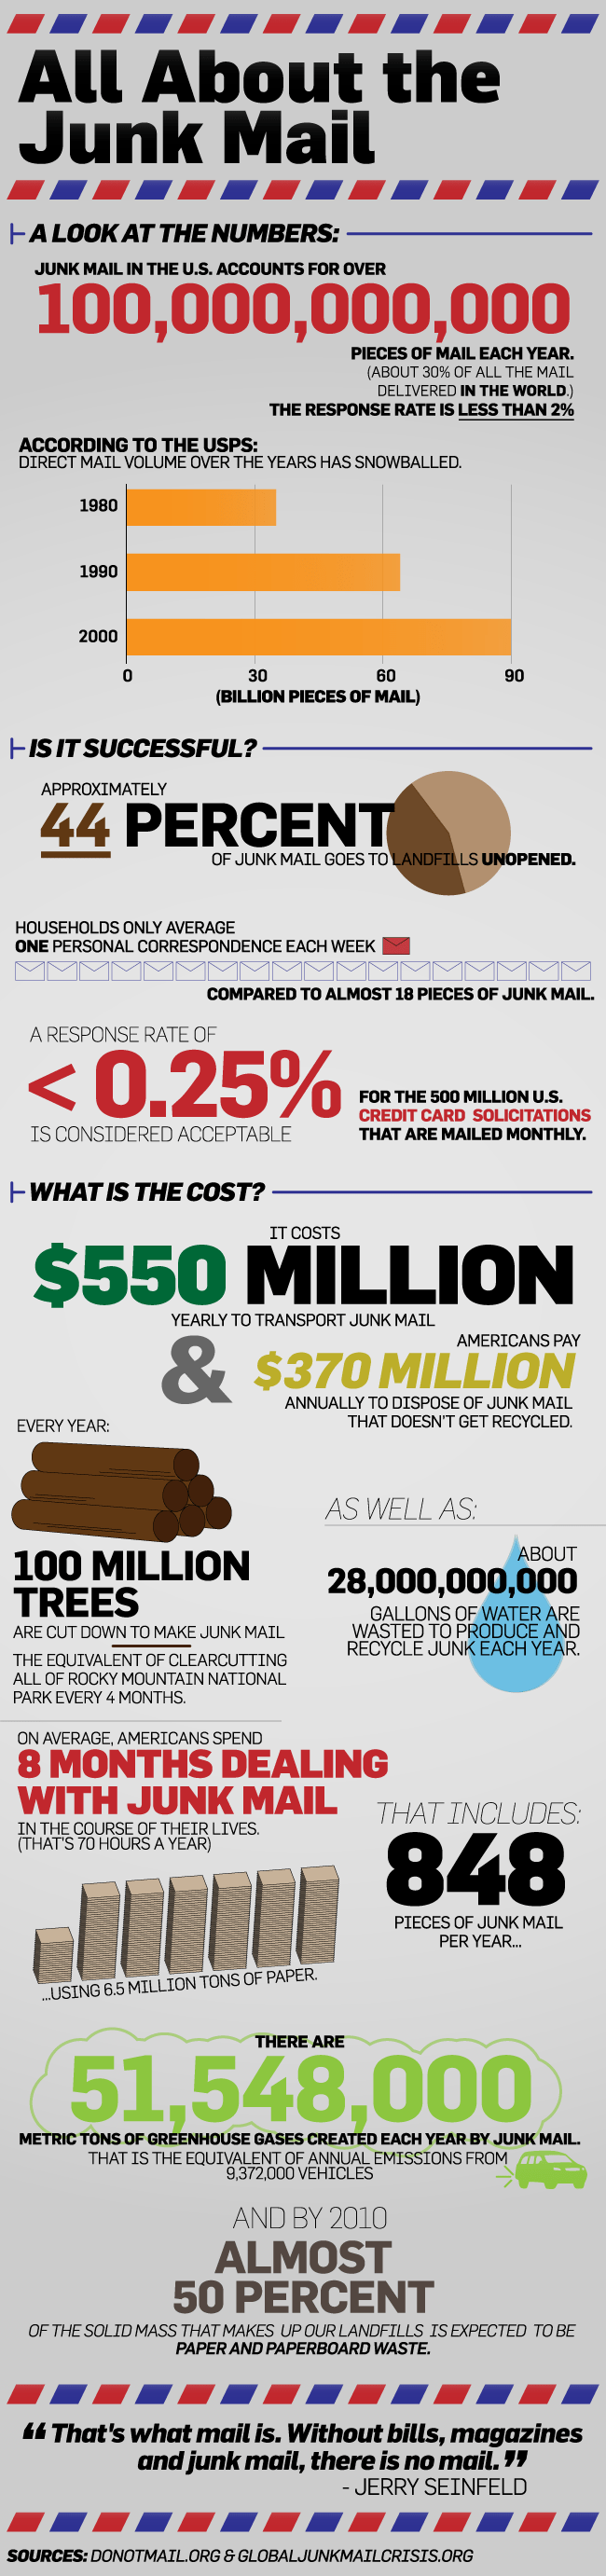 daily info graphic on junk mail